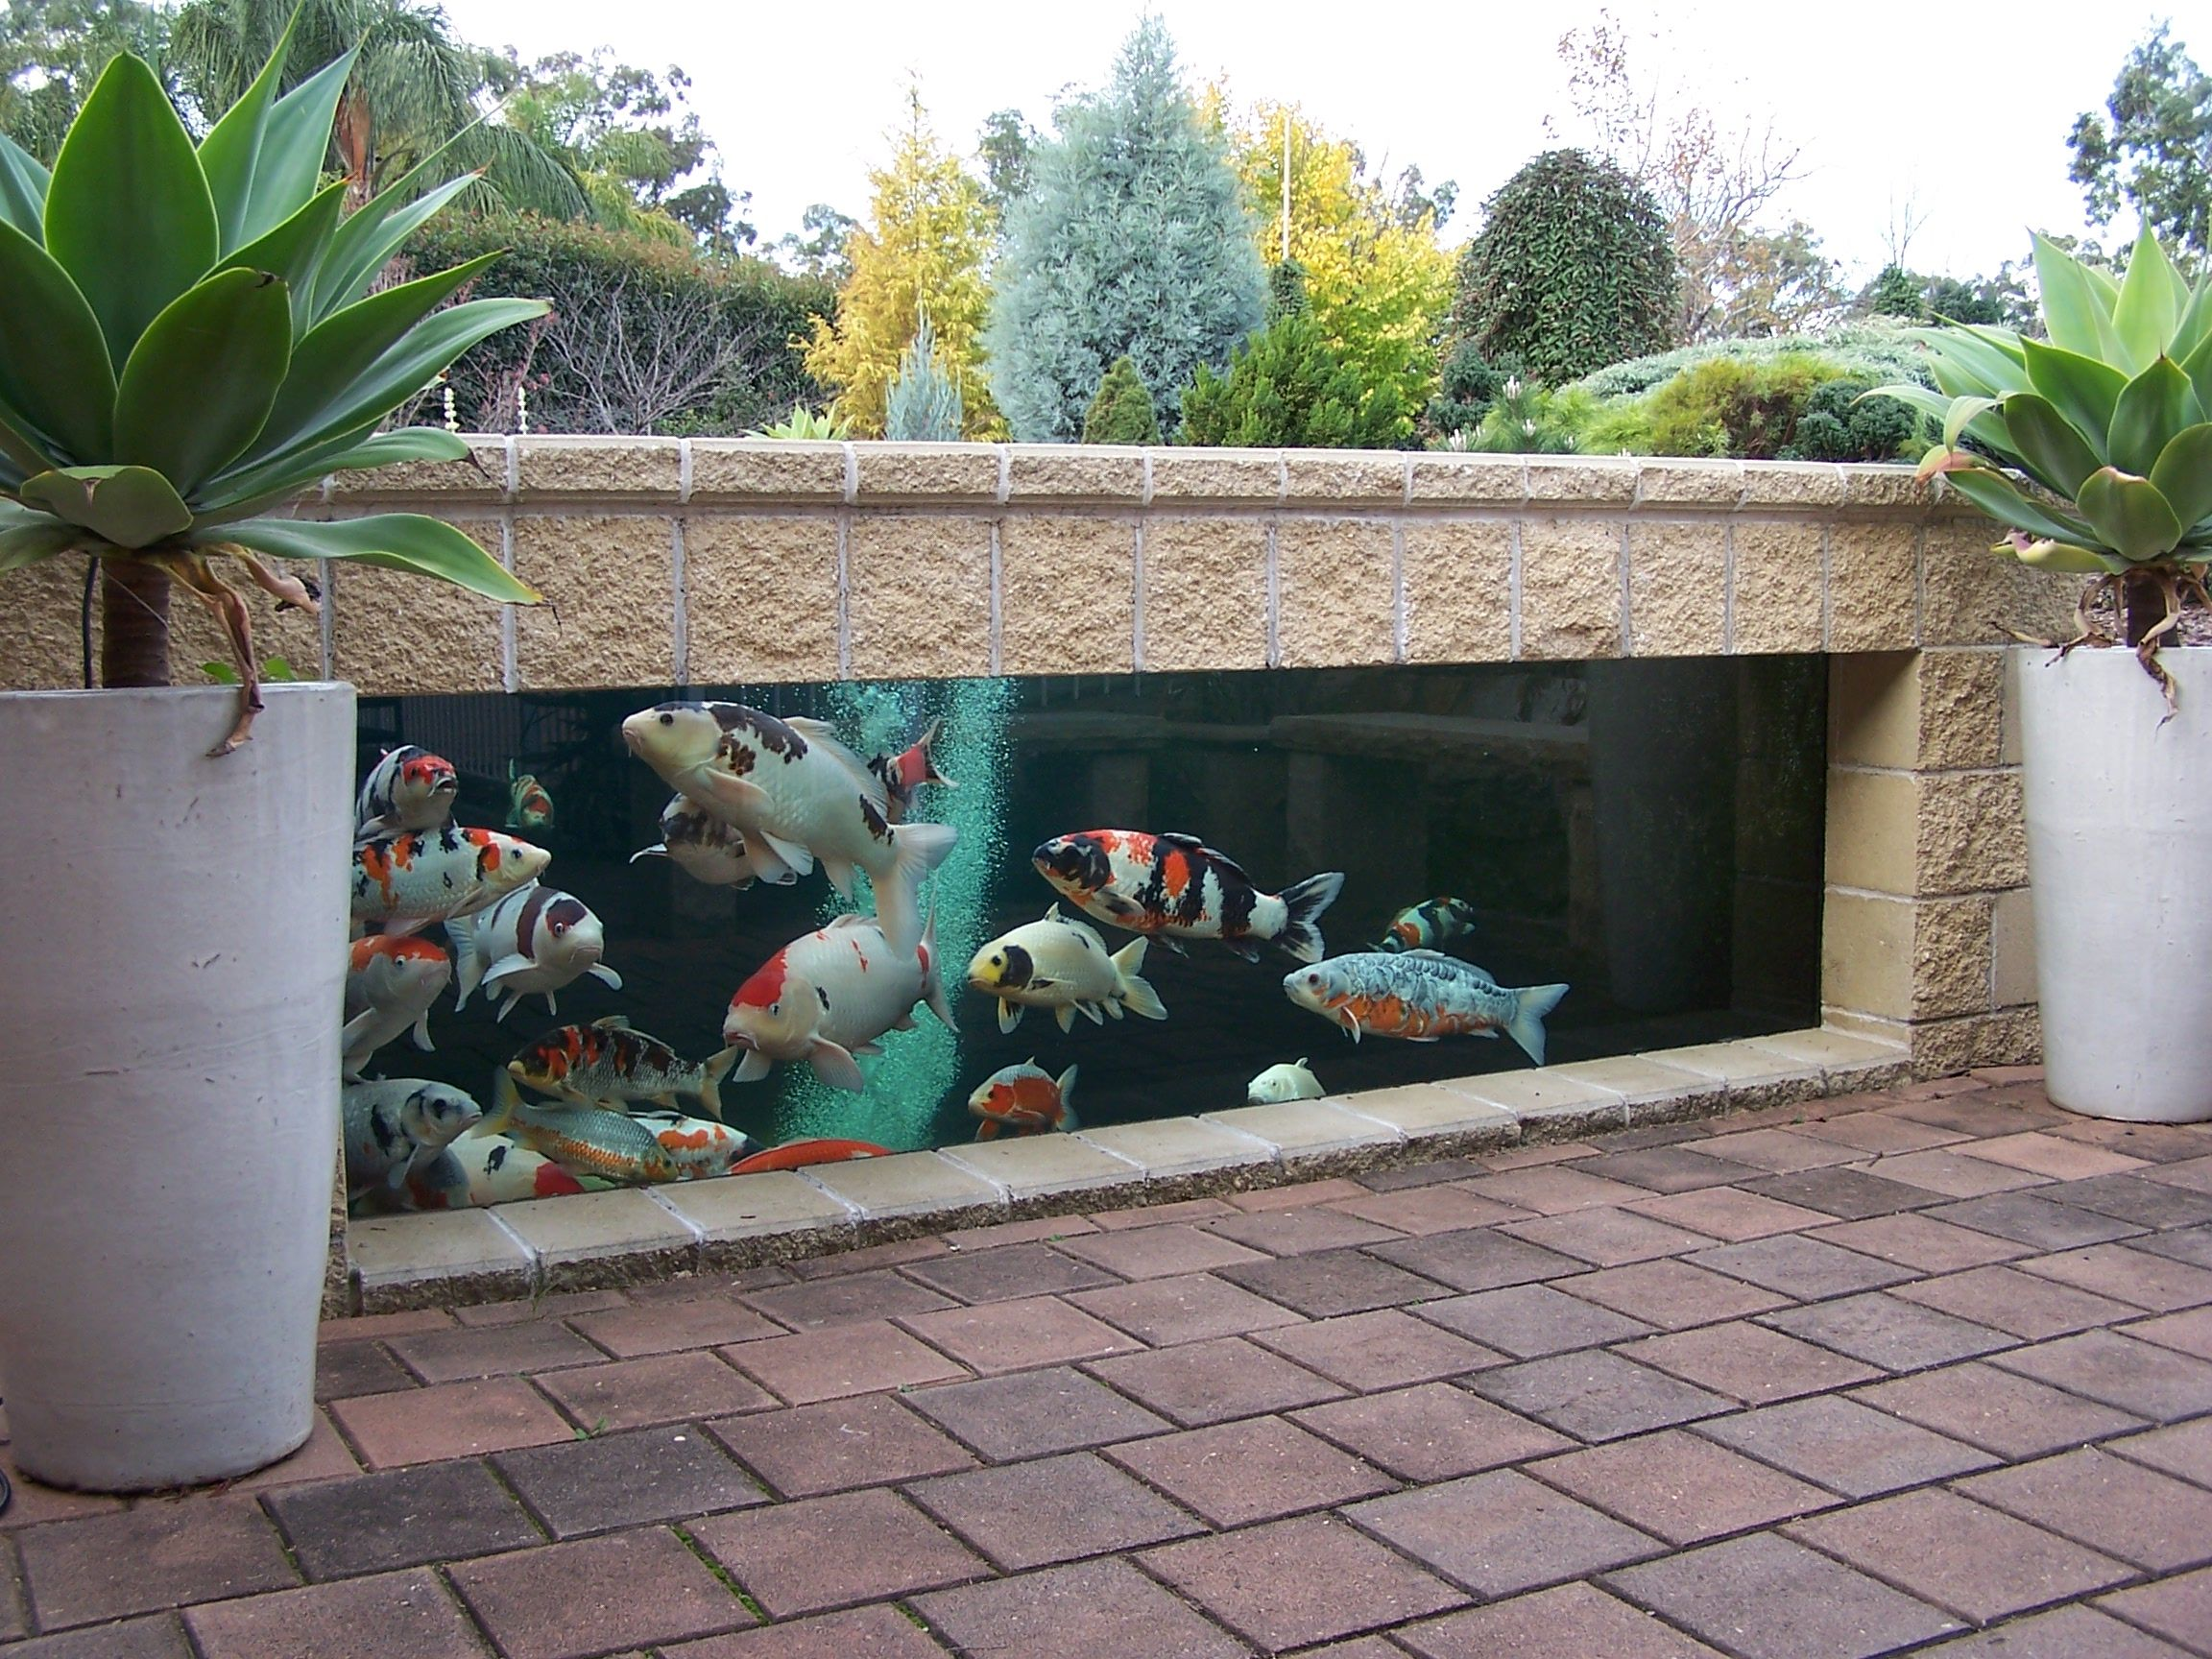 Best 20 Fish ponds ideas on Pinterest Pond kits Koi pond kits